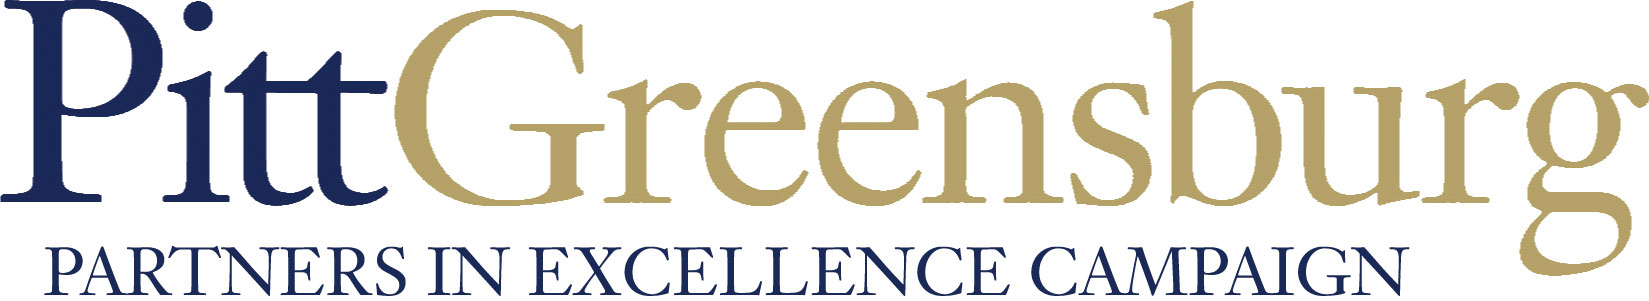 Pitt-Greensburg Partners in Excellence Campaign